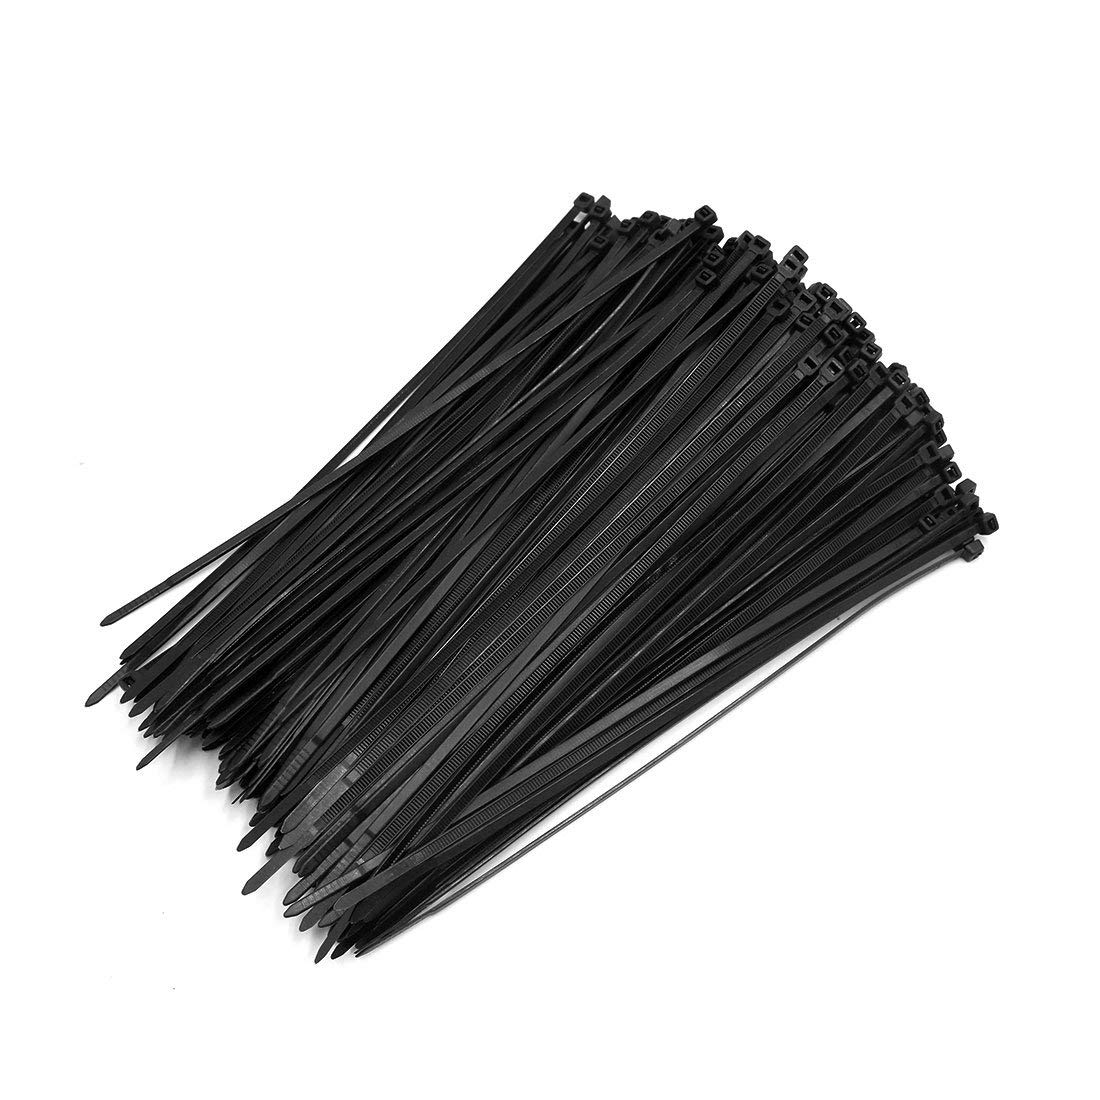 uxcell 500pcs Black 5mm x 250mm Nylon Fasten Self Locking Cable Wire Tie for Car Vehicle